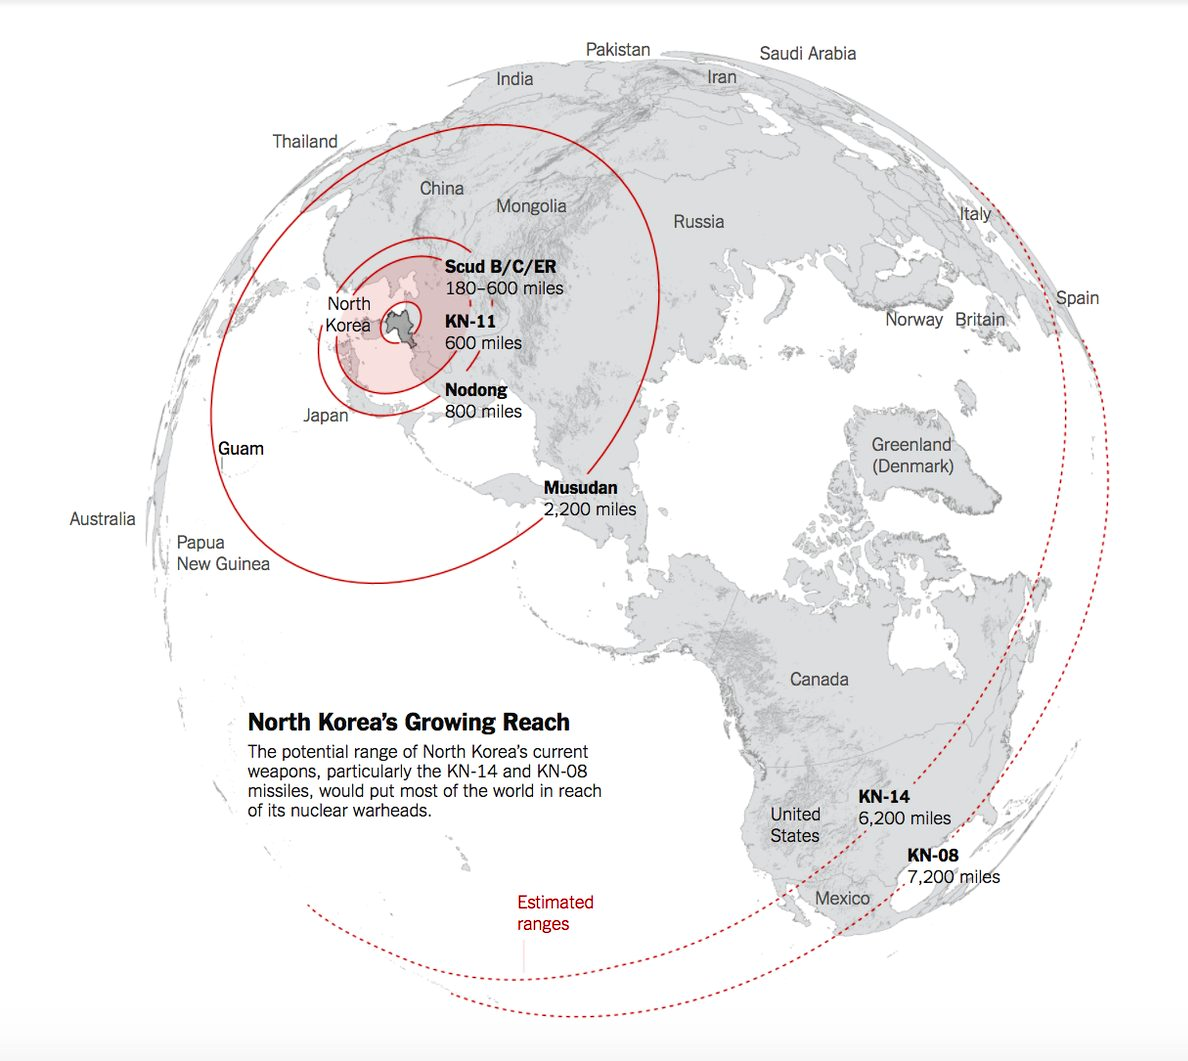 New York Times map of supposed North Korean missile ranges